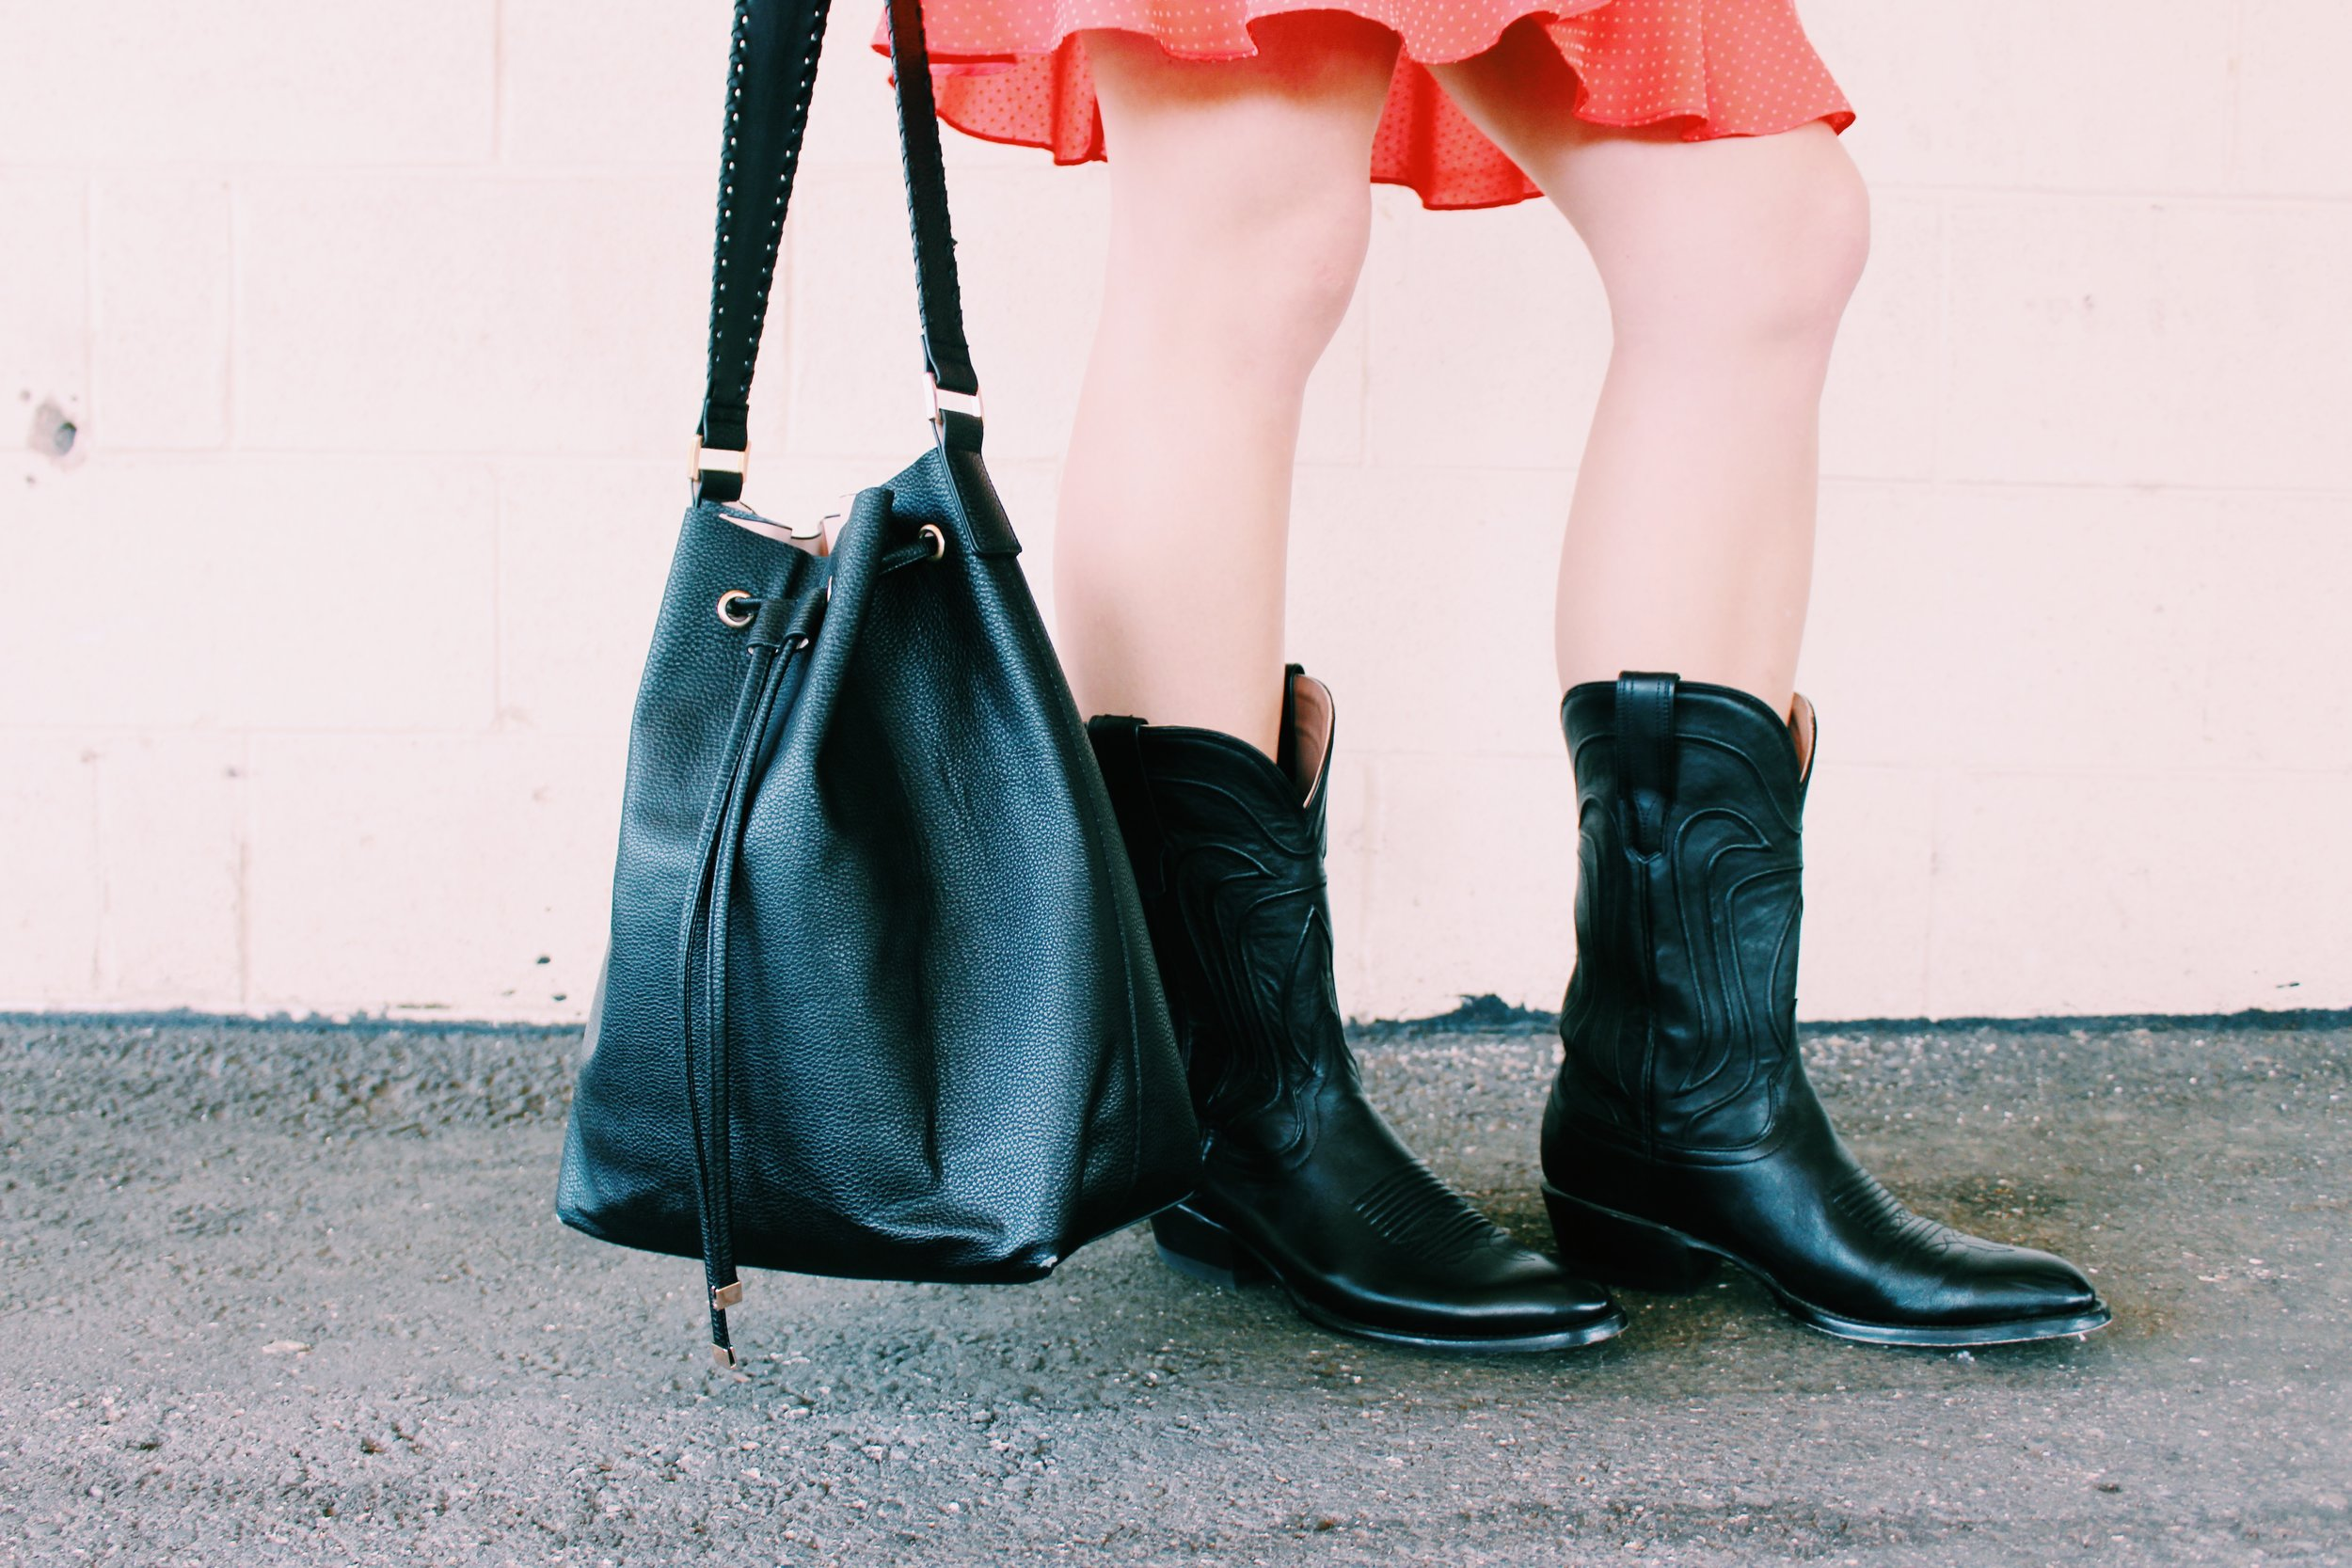 Yeehaw! Cowboy boots are the perfect addition to skirts, jeans, and your favorite sundress.